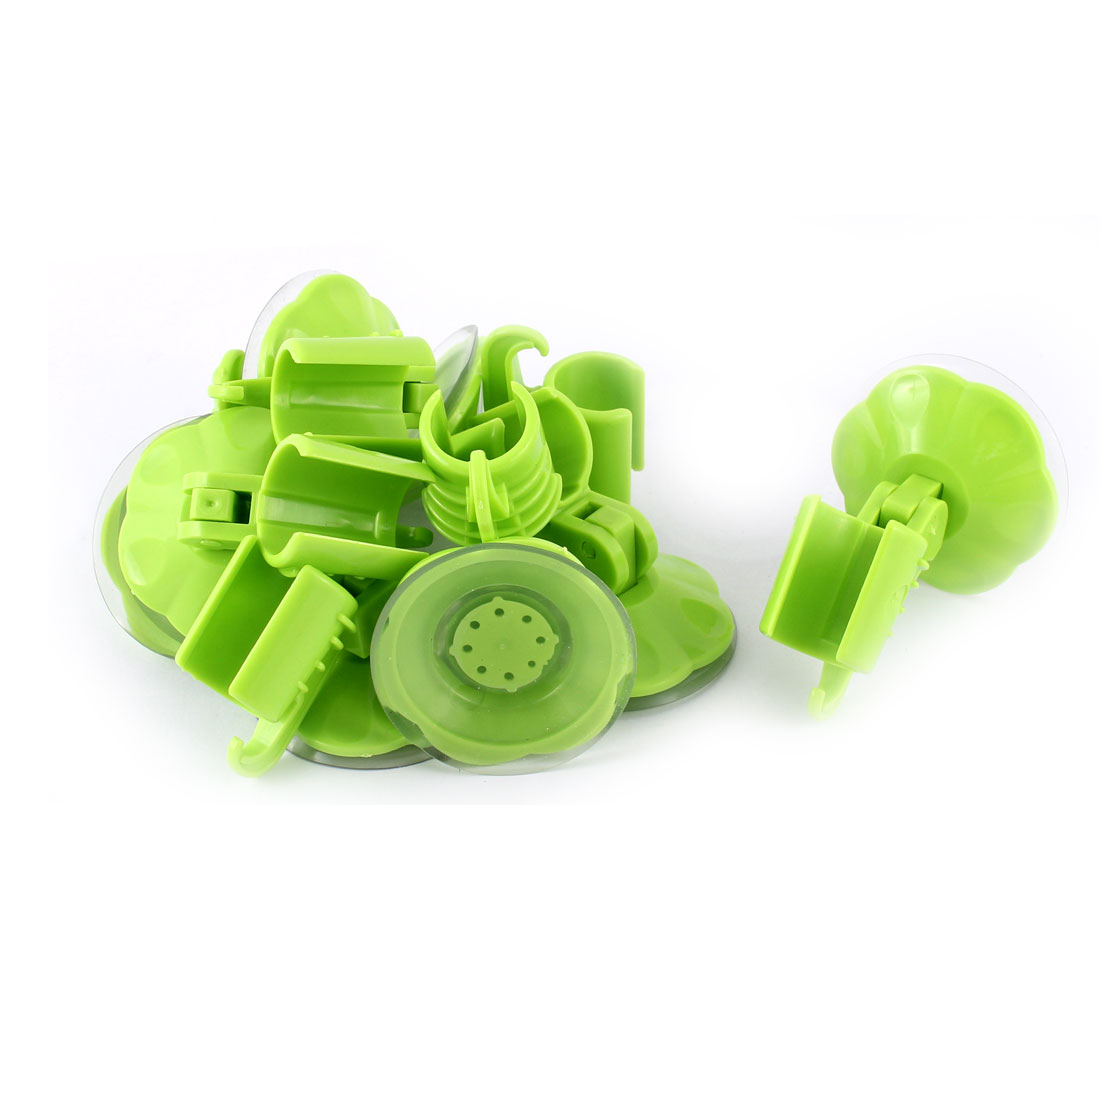 8pcs Attachable Bathroom Shower Head Holder Wall Suction Cup Bracket Green